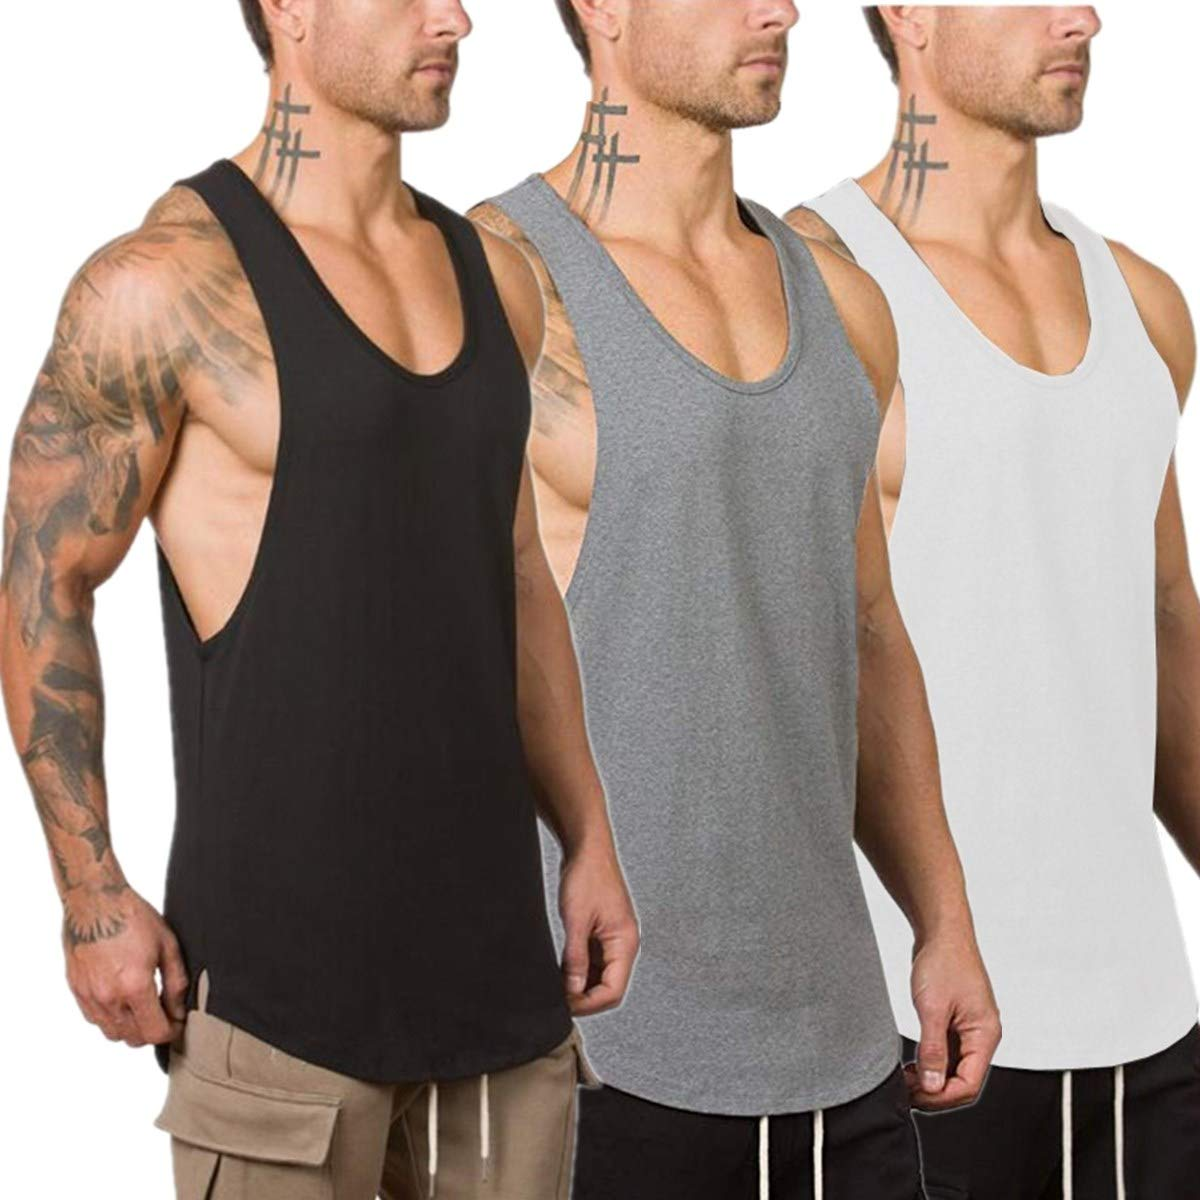 e02ebb799 Amazon.com: Muscle Killer 3 Pack Men's Muscle Gym Workout Stringer Tank  Tops Bodybuilding Fitness T-Shirts: Clothing